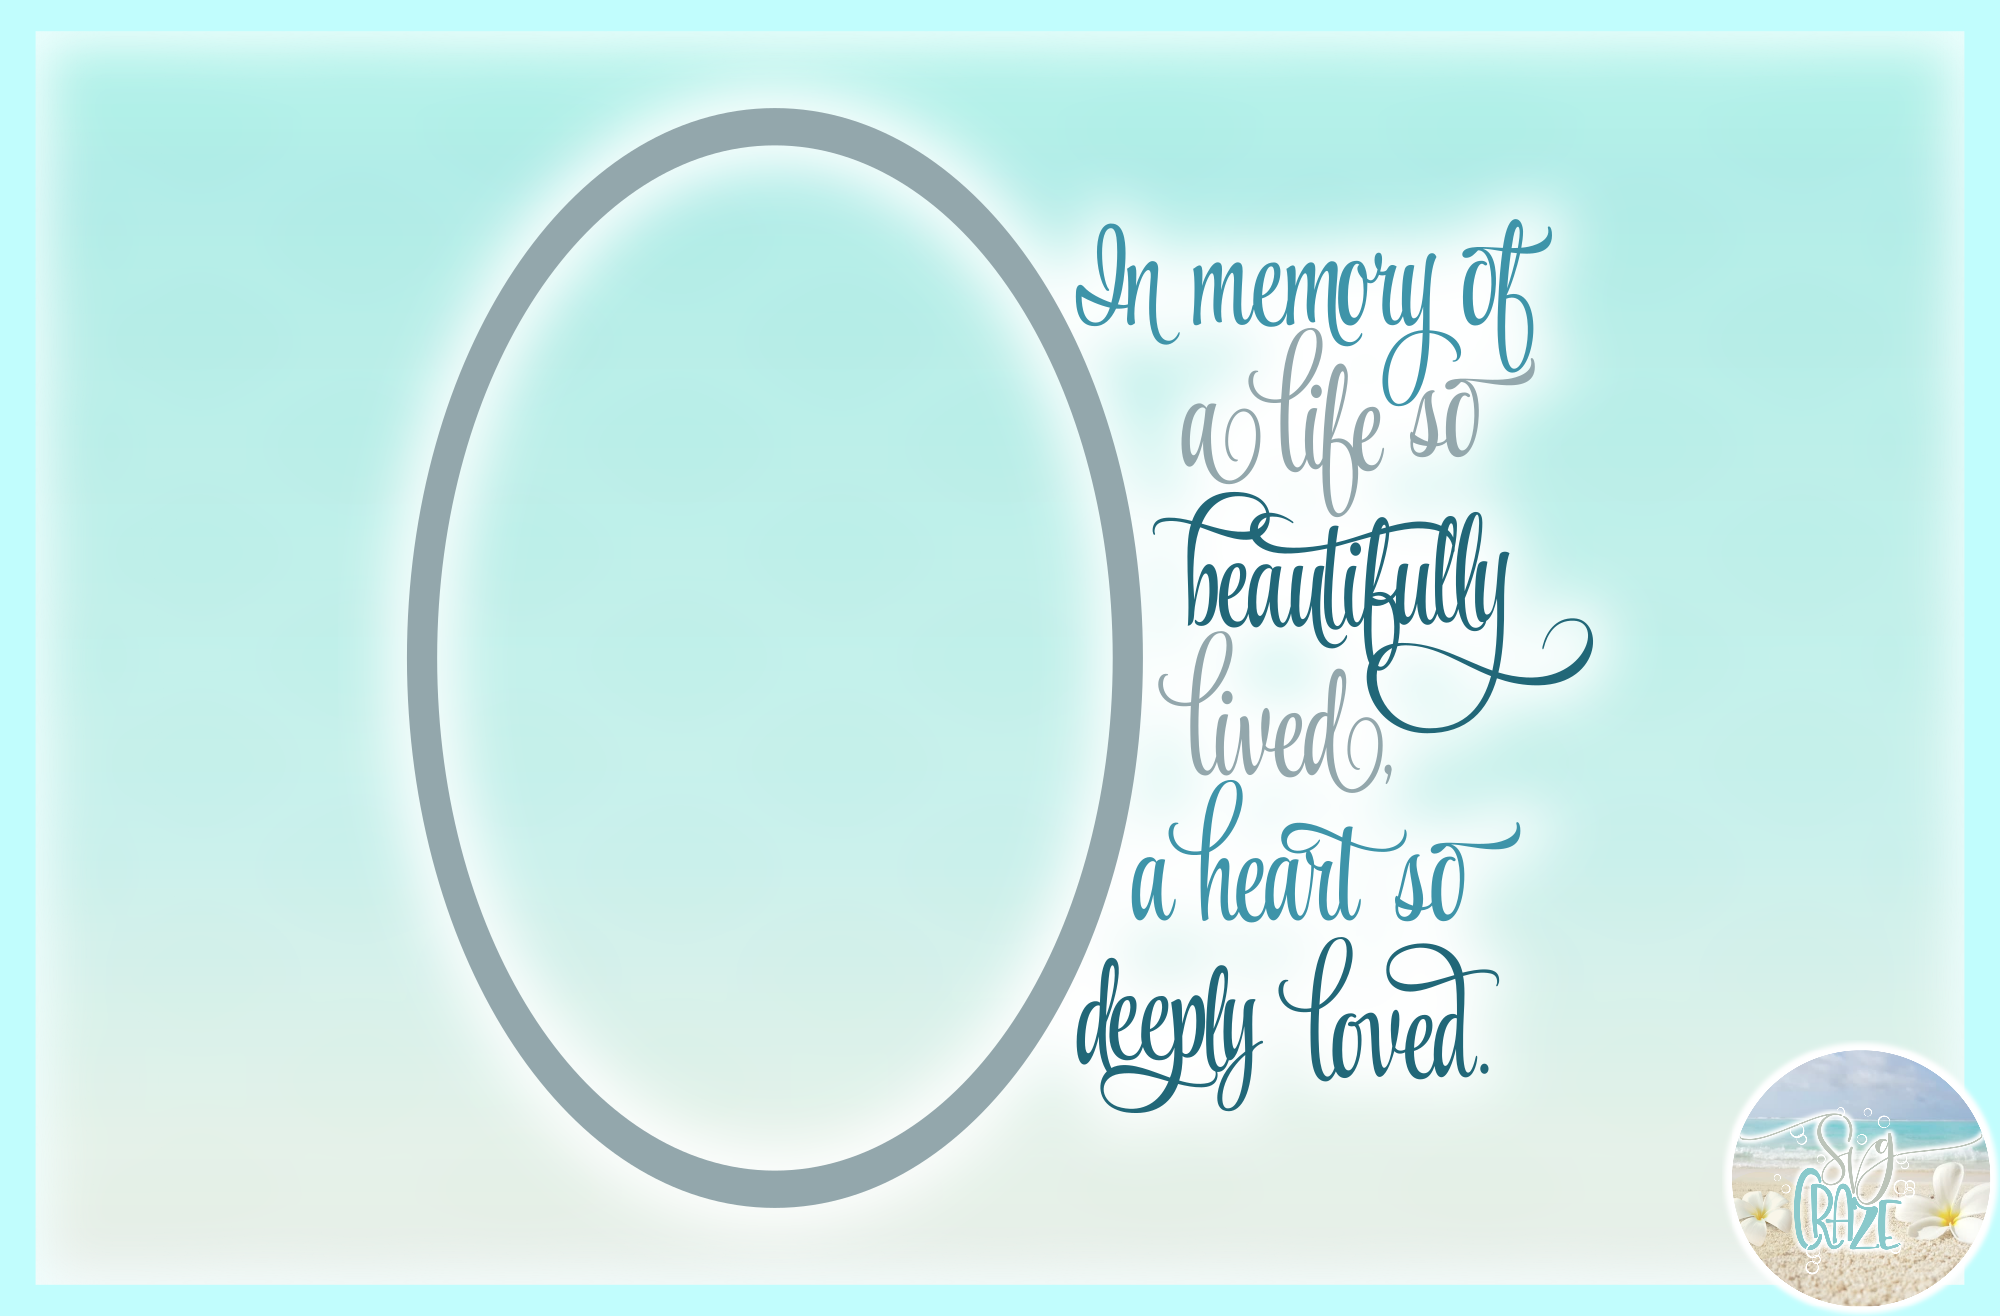 In Memory of Life Beautifully Lived Heart Deeply Loved SVG example image 3